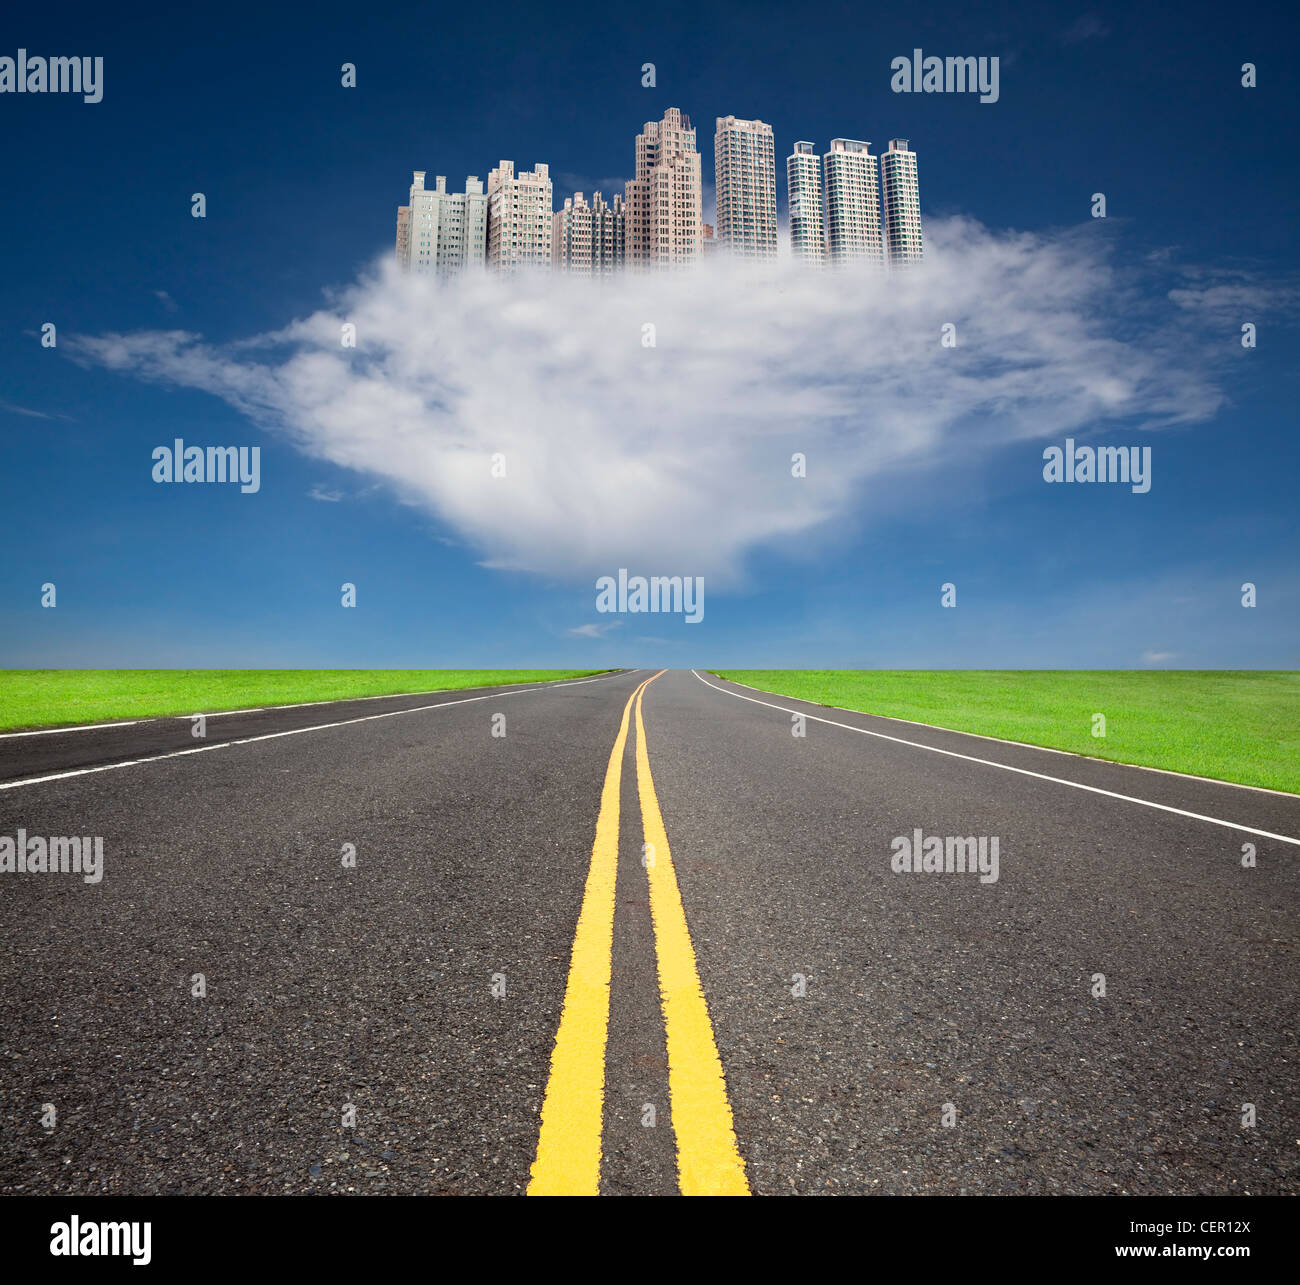 The road to the future city over the cloud - Stock Image